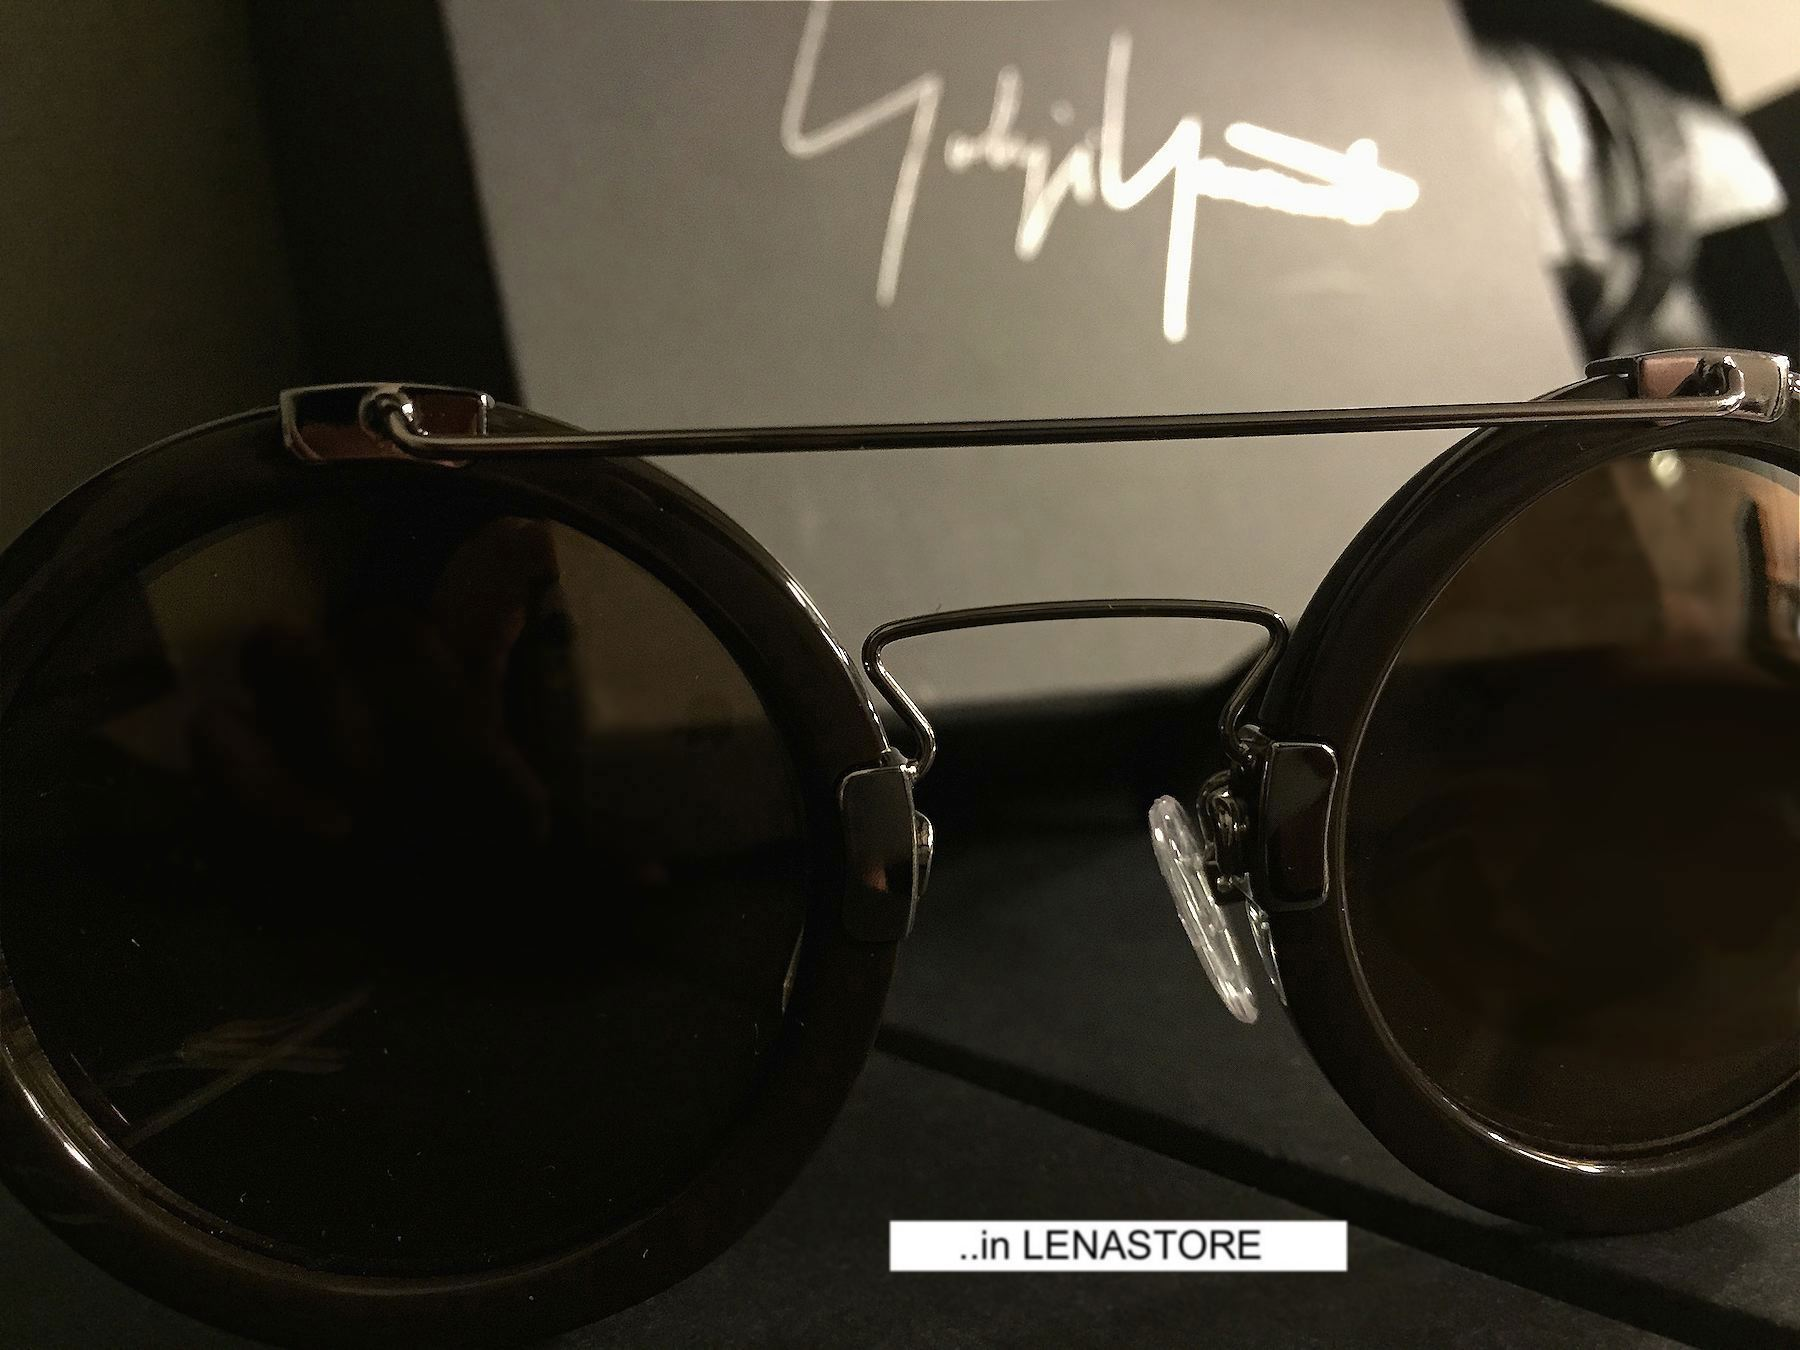 yohji-yamamoto-shop-on-line-lenastore-lenafashion-collezione-primavera-estate-2015-occhiali-sunglasses